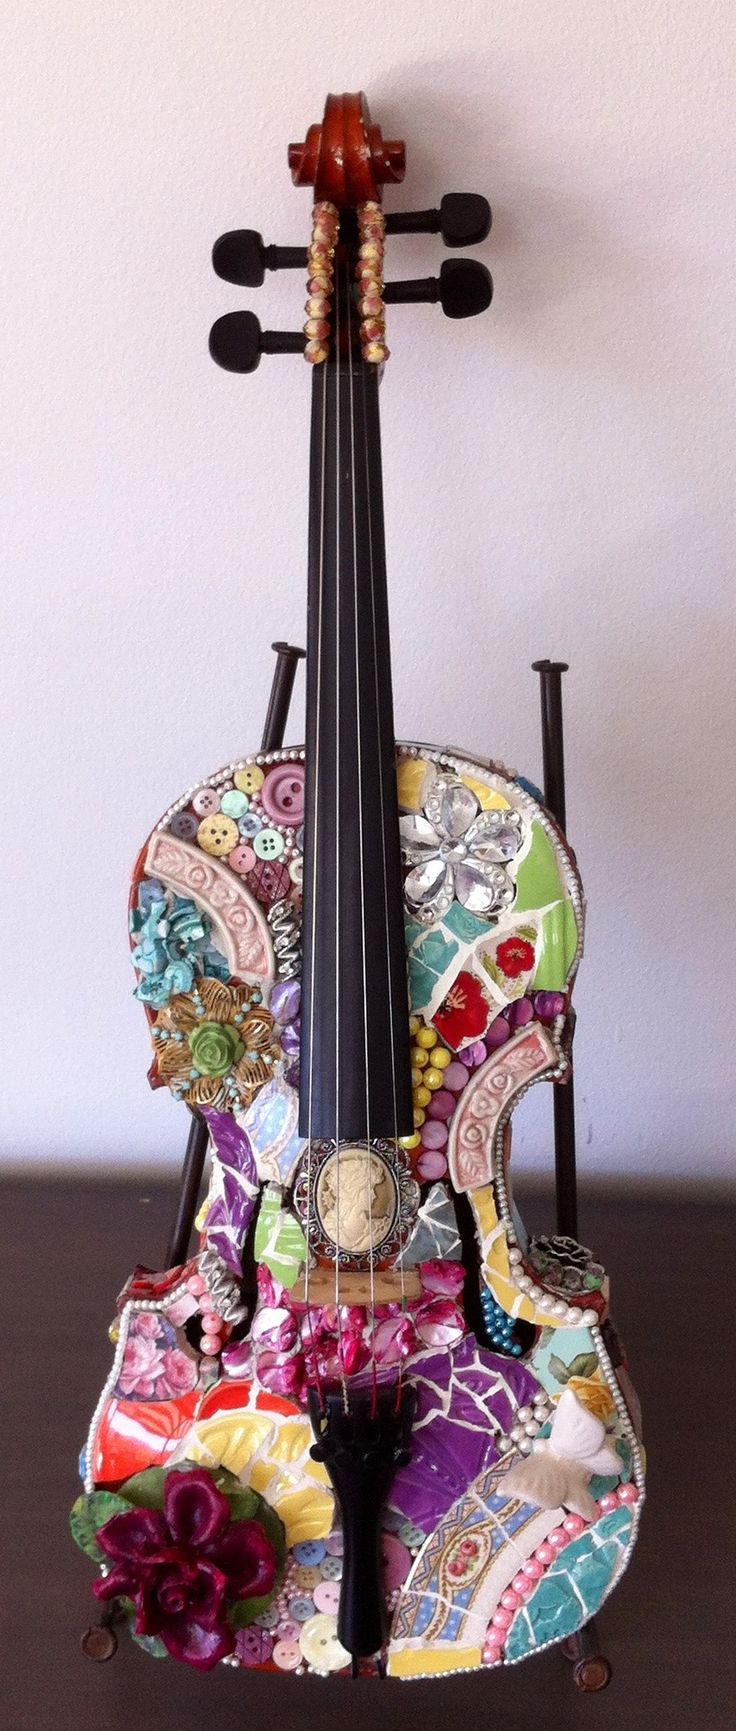 Violin / Can't imagine creating this. There is sooo much talent and imagination in the world!